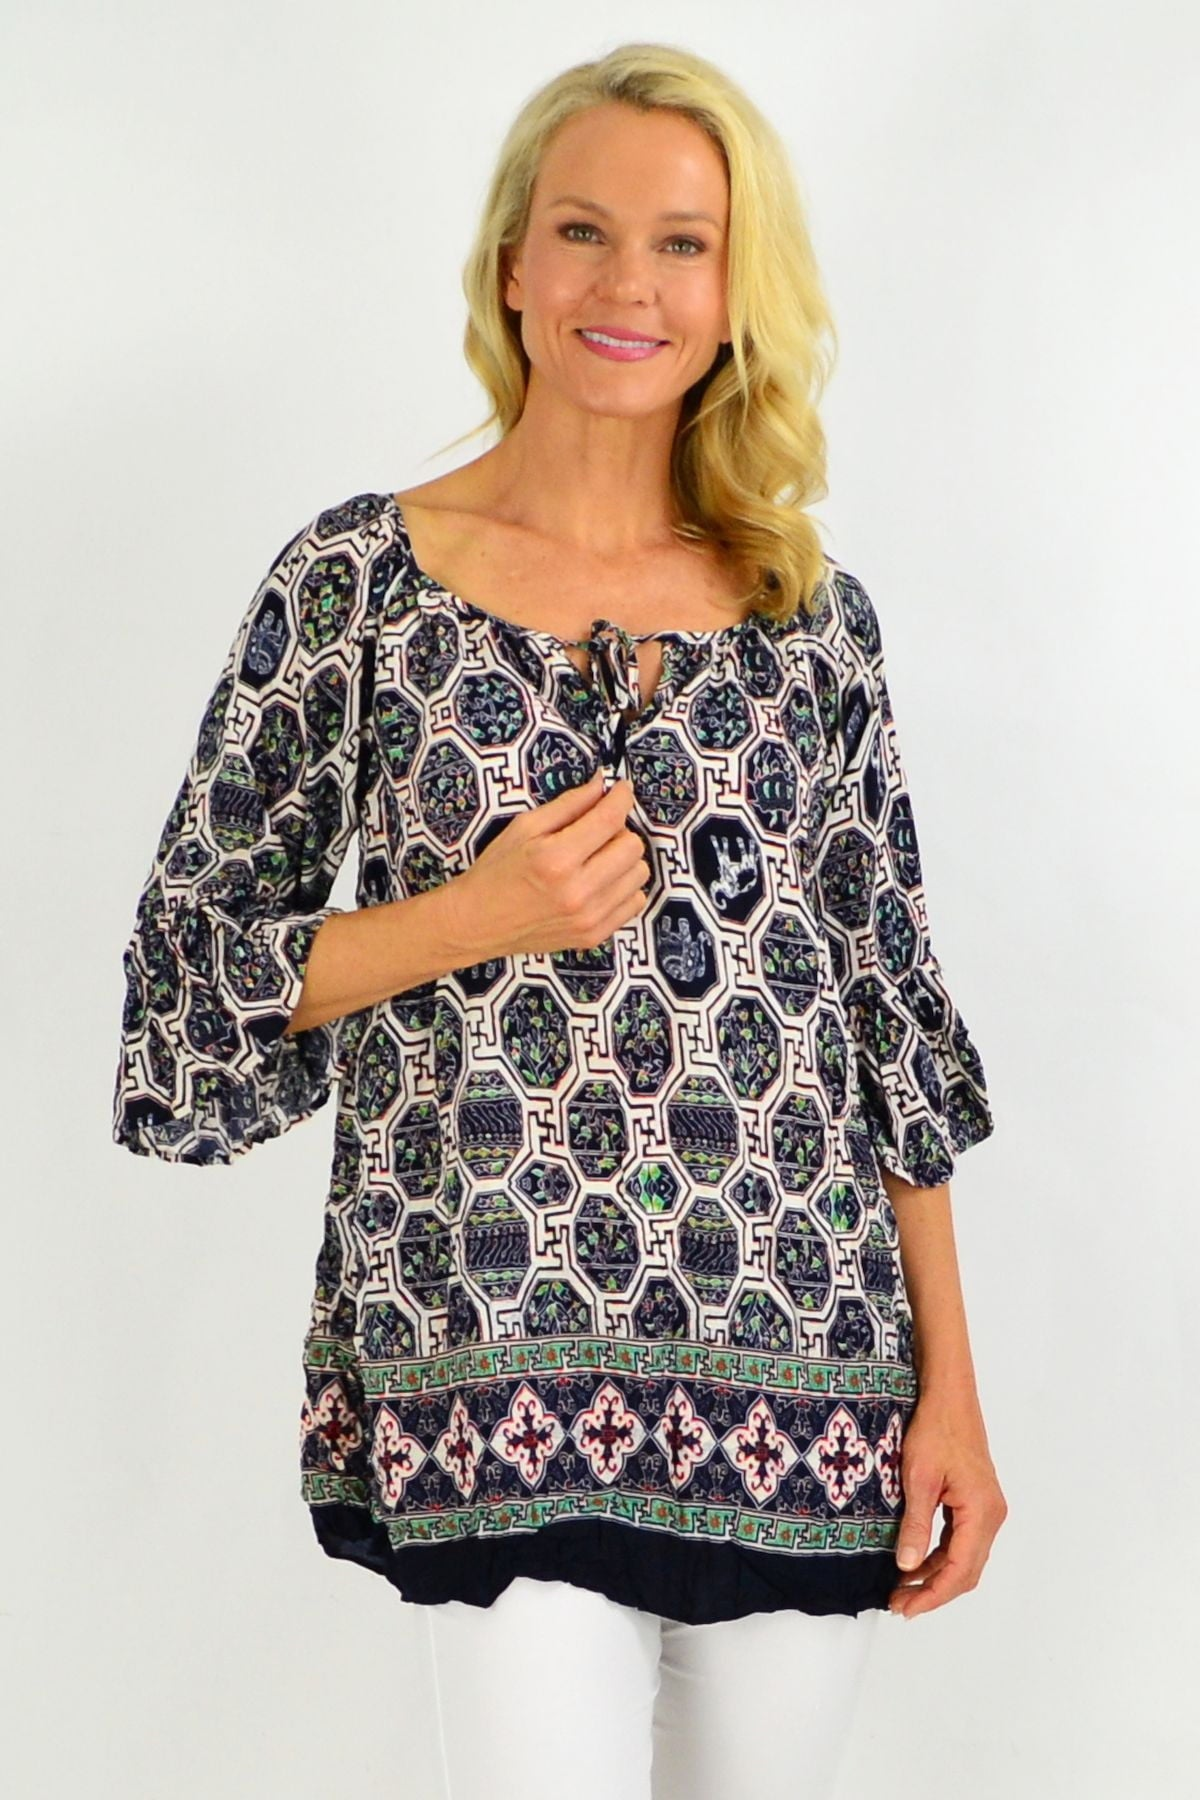 Oriental Crinkle Tie Tunic Top | I Love Tunics | Tunic Tops | Tunic | Tunic Dresses  | womens clothing online